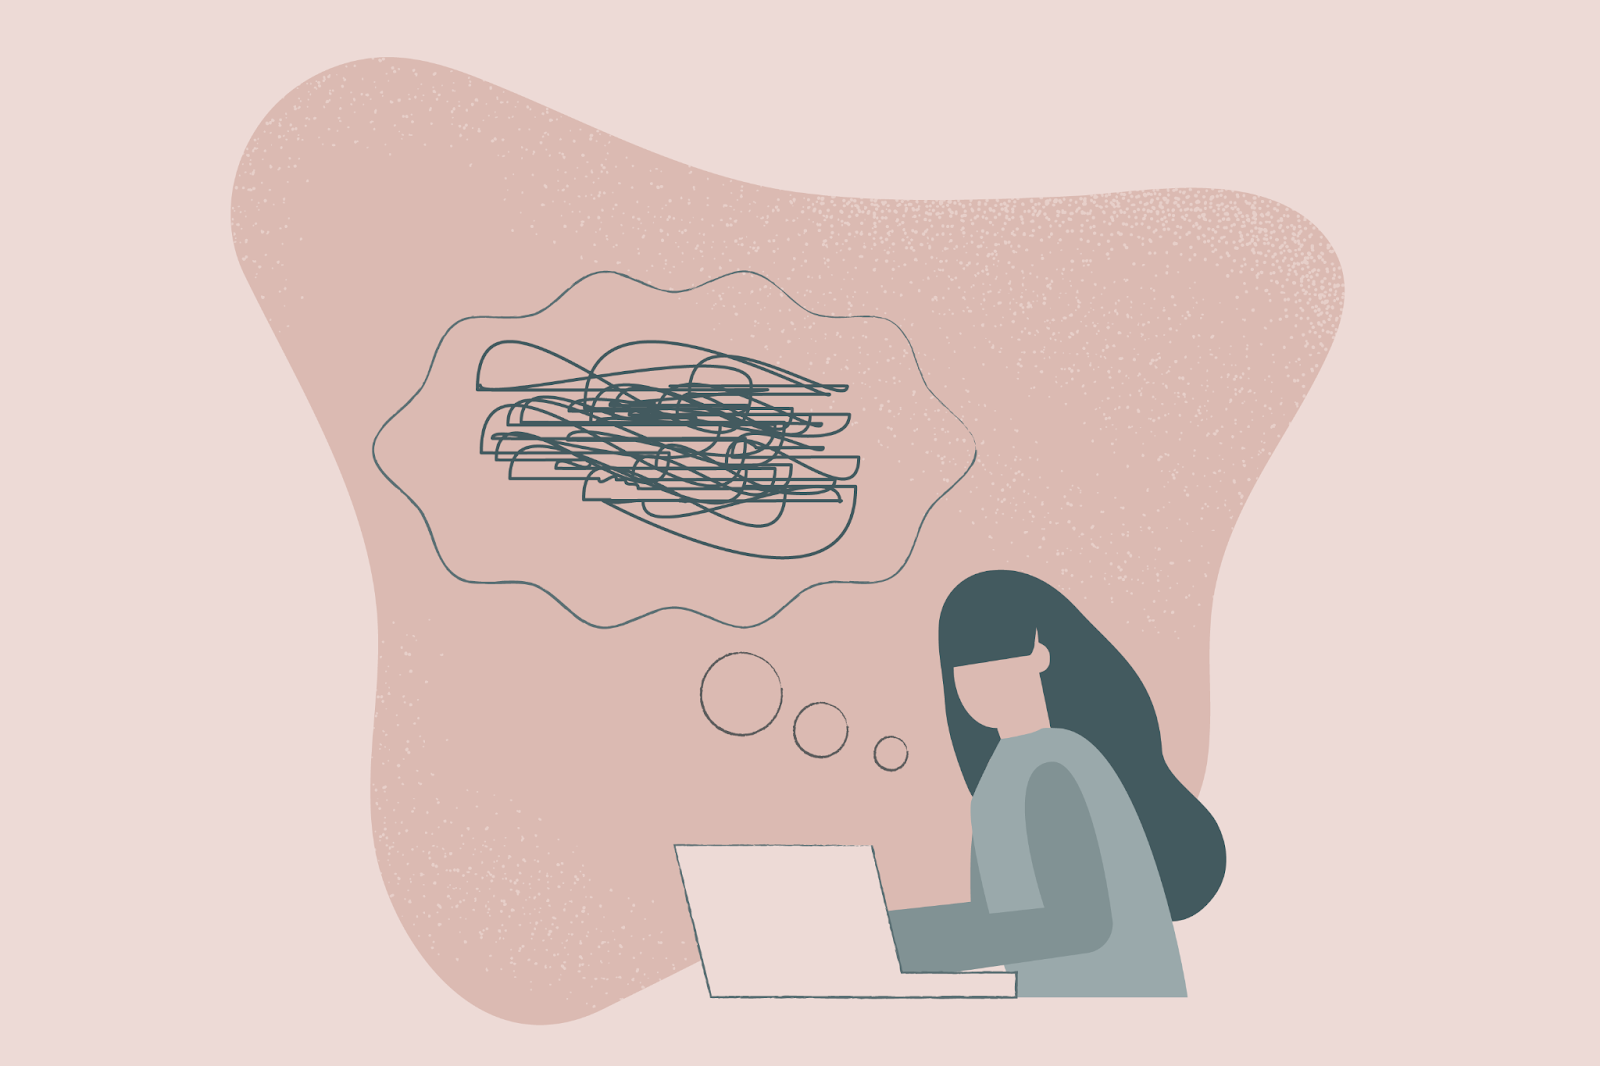 drawing of a woman thinking with scribbles in her thoughts.